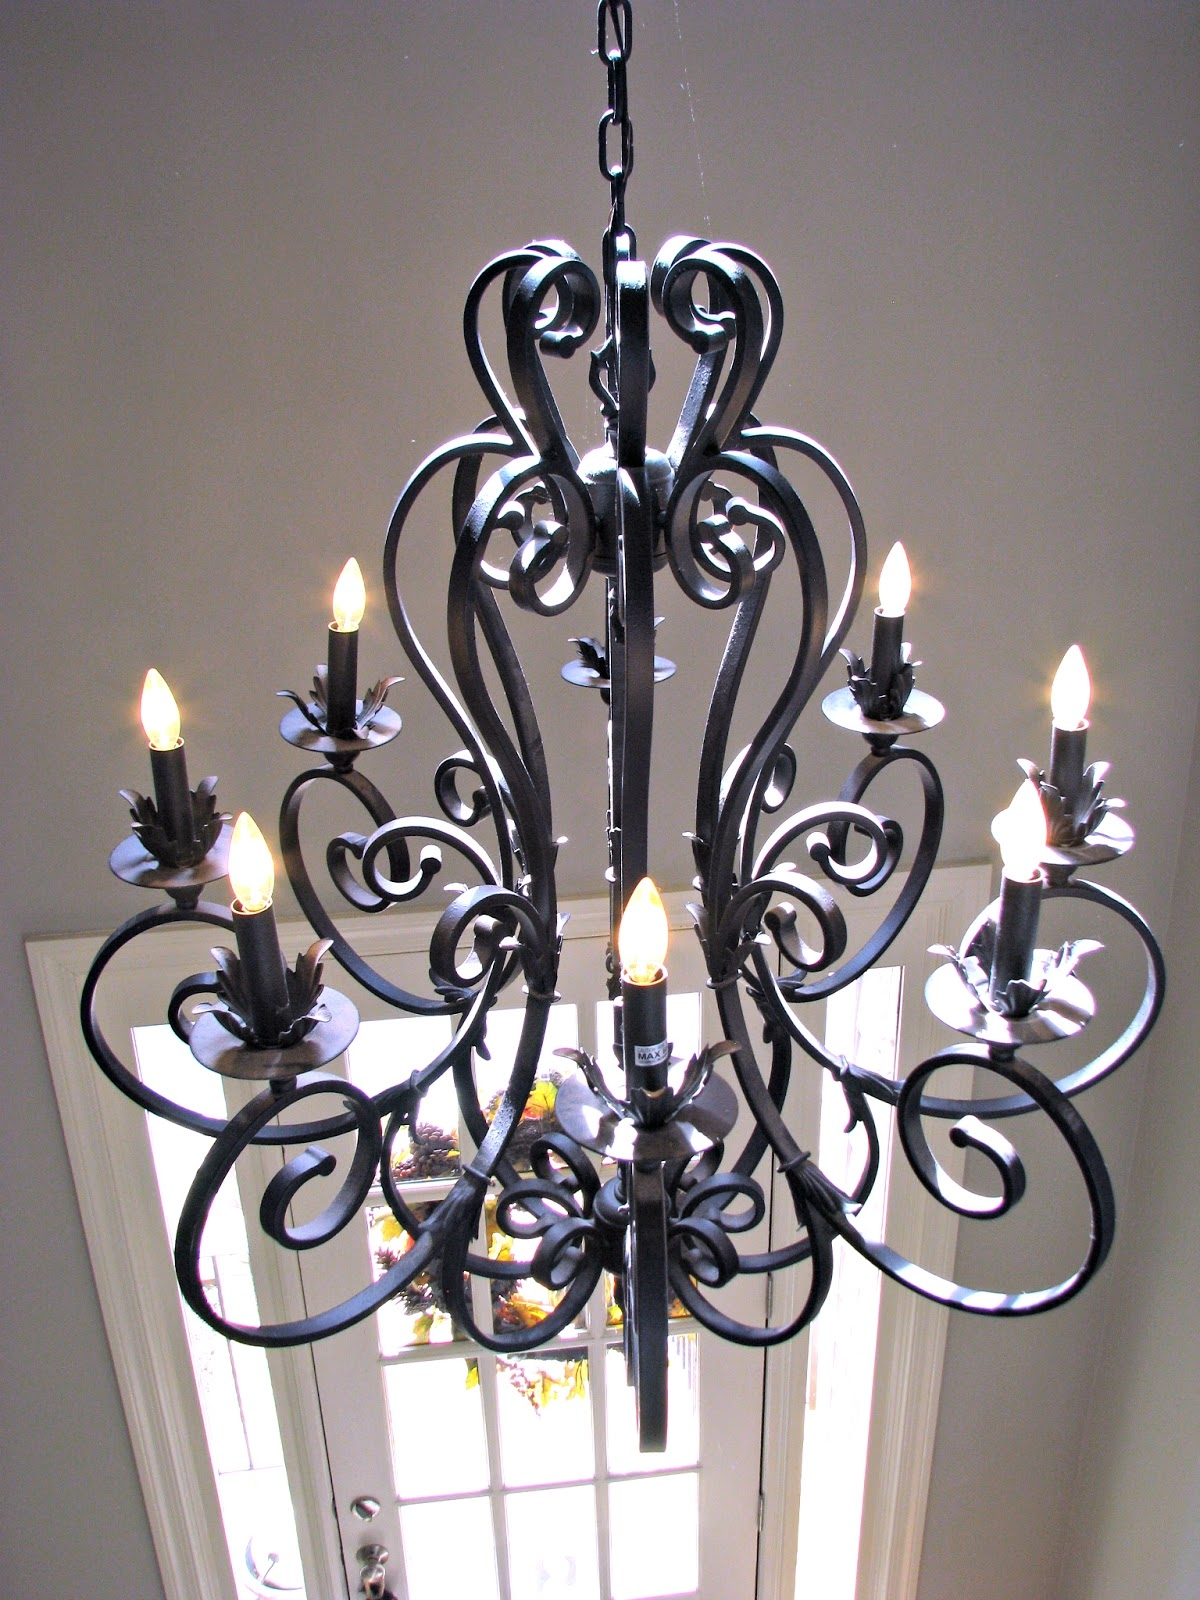 Wrought Iron Lighting Fixtures Roselawnlutheran Regarding Wrought Iron Chandeliers (Image 14 of 15)